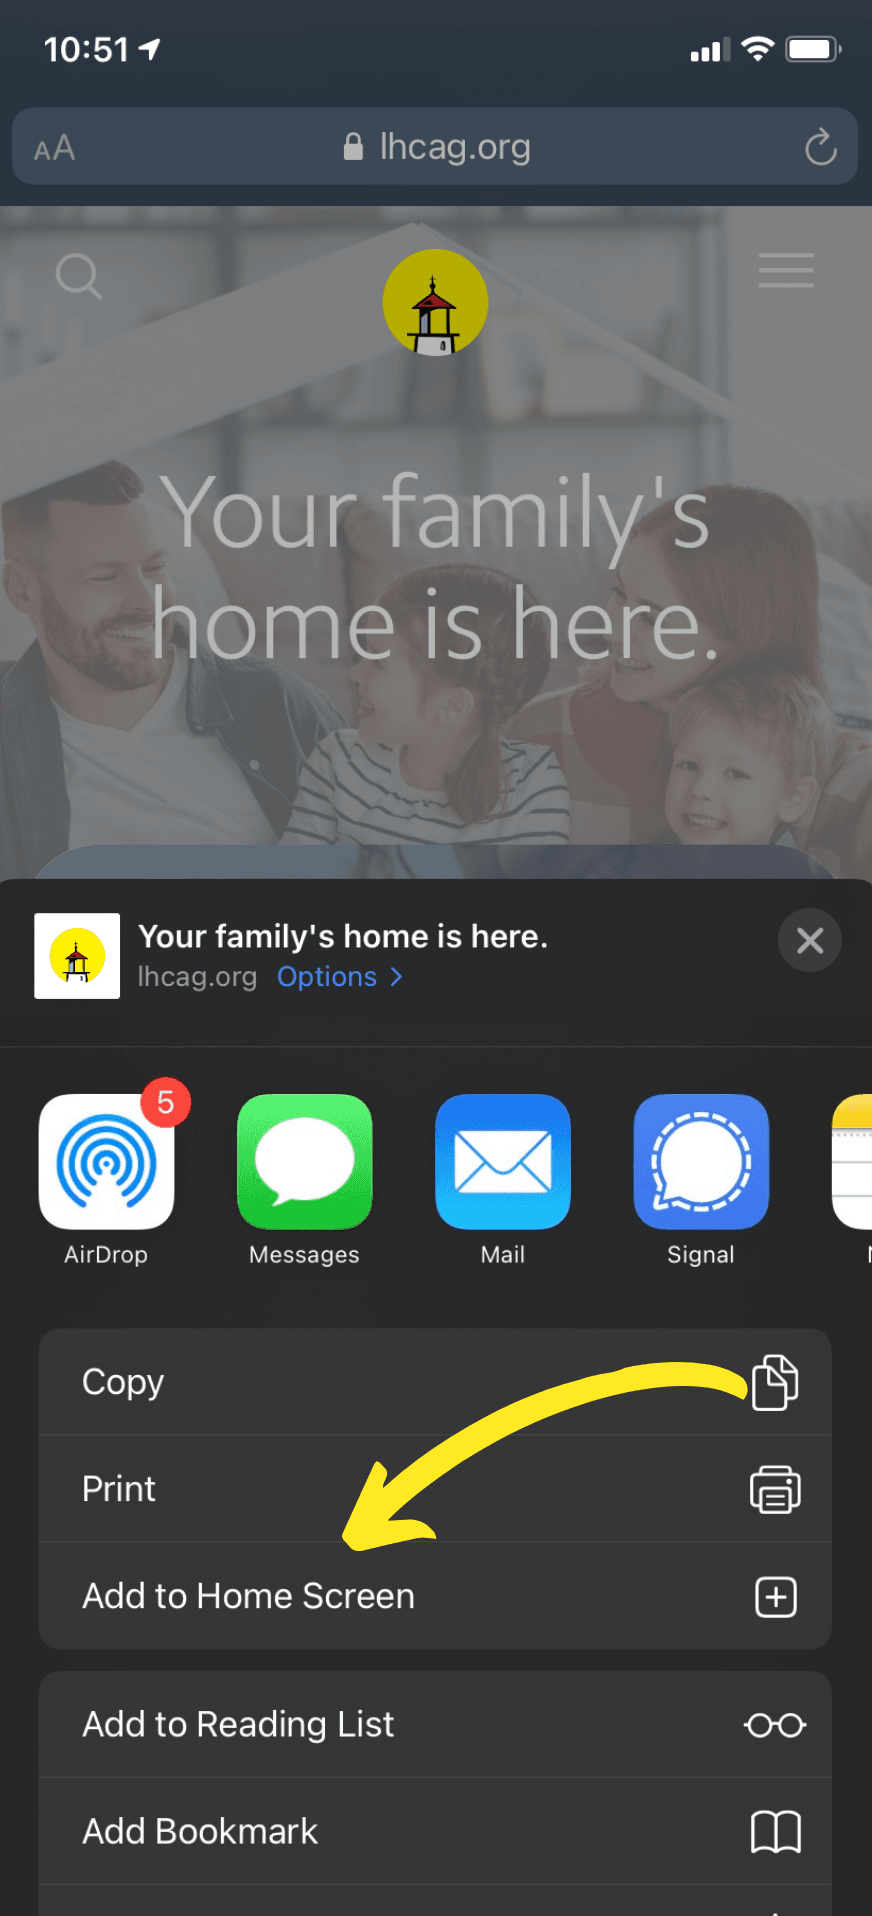 iOS Share screen with arrow pointing to the 'add a home screen' button